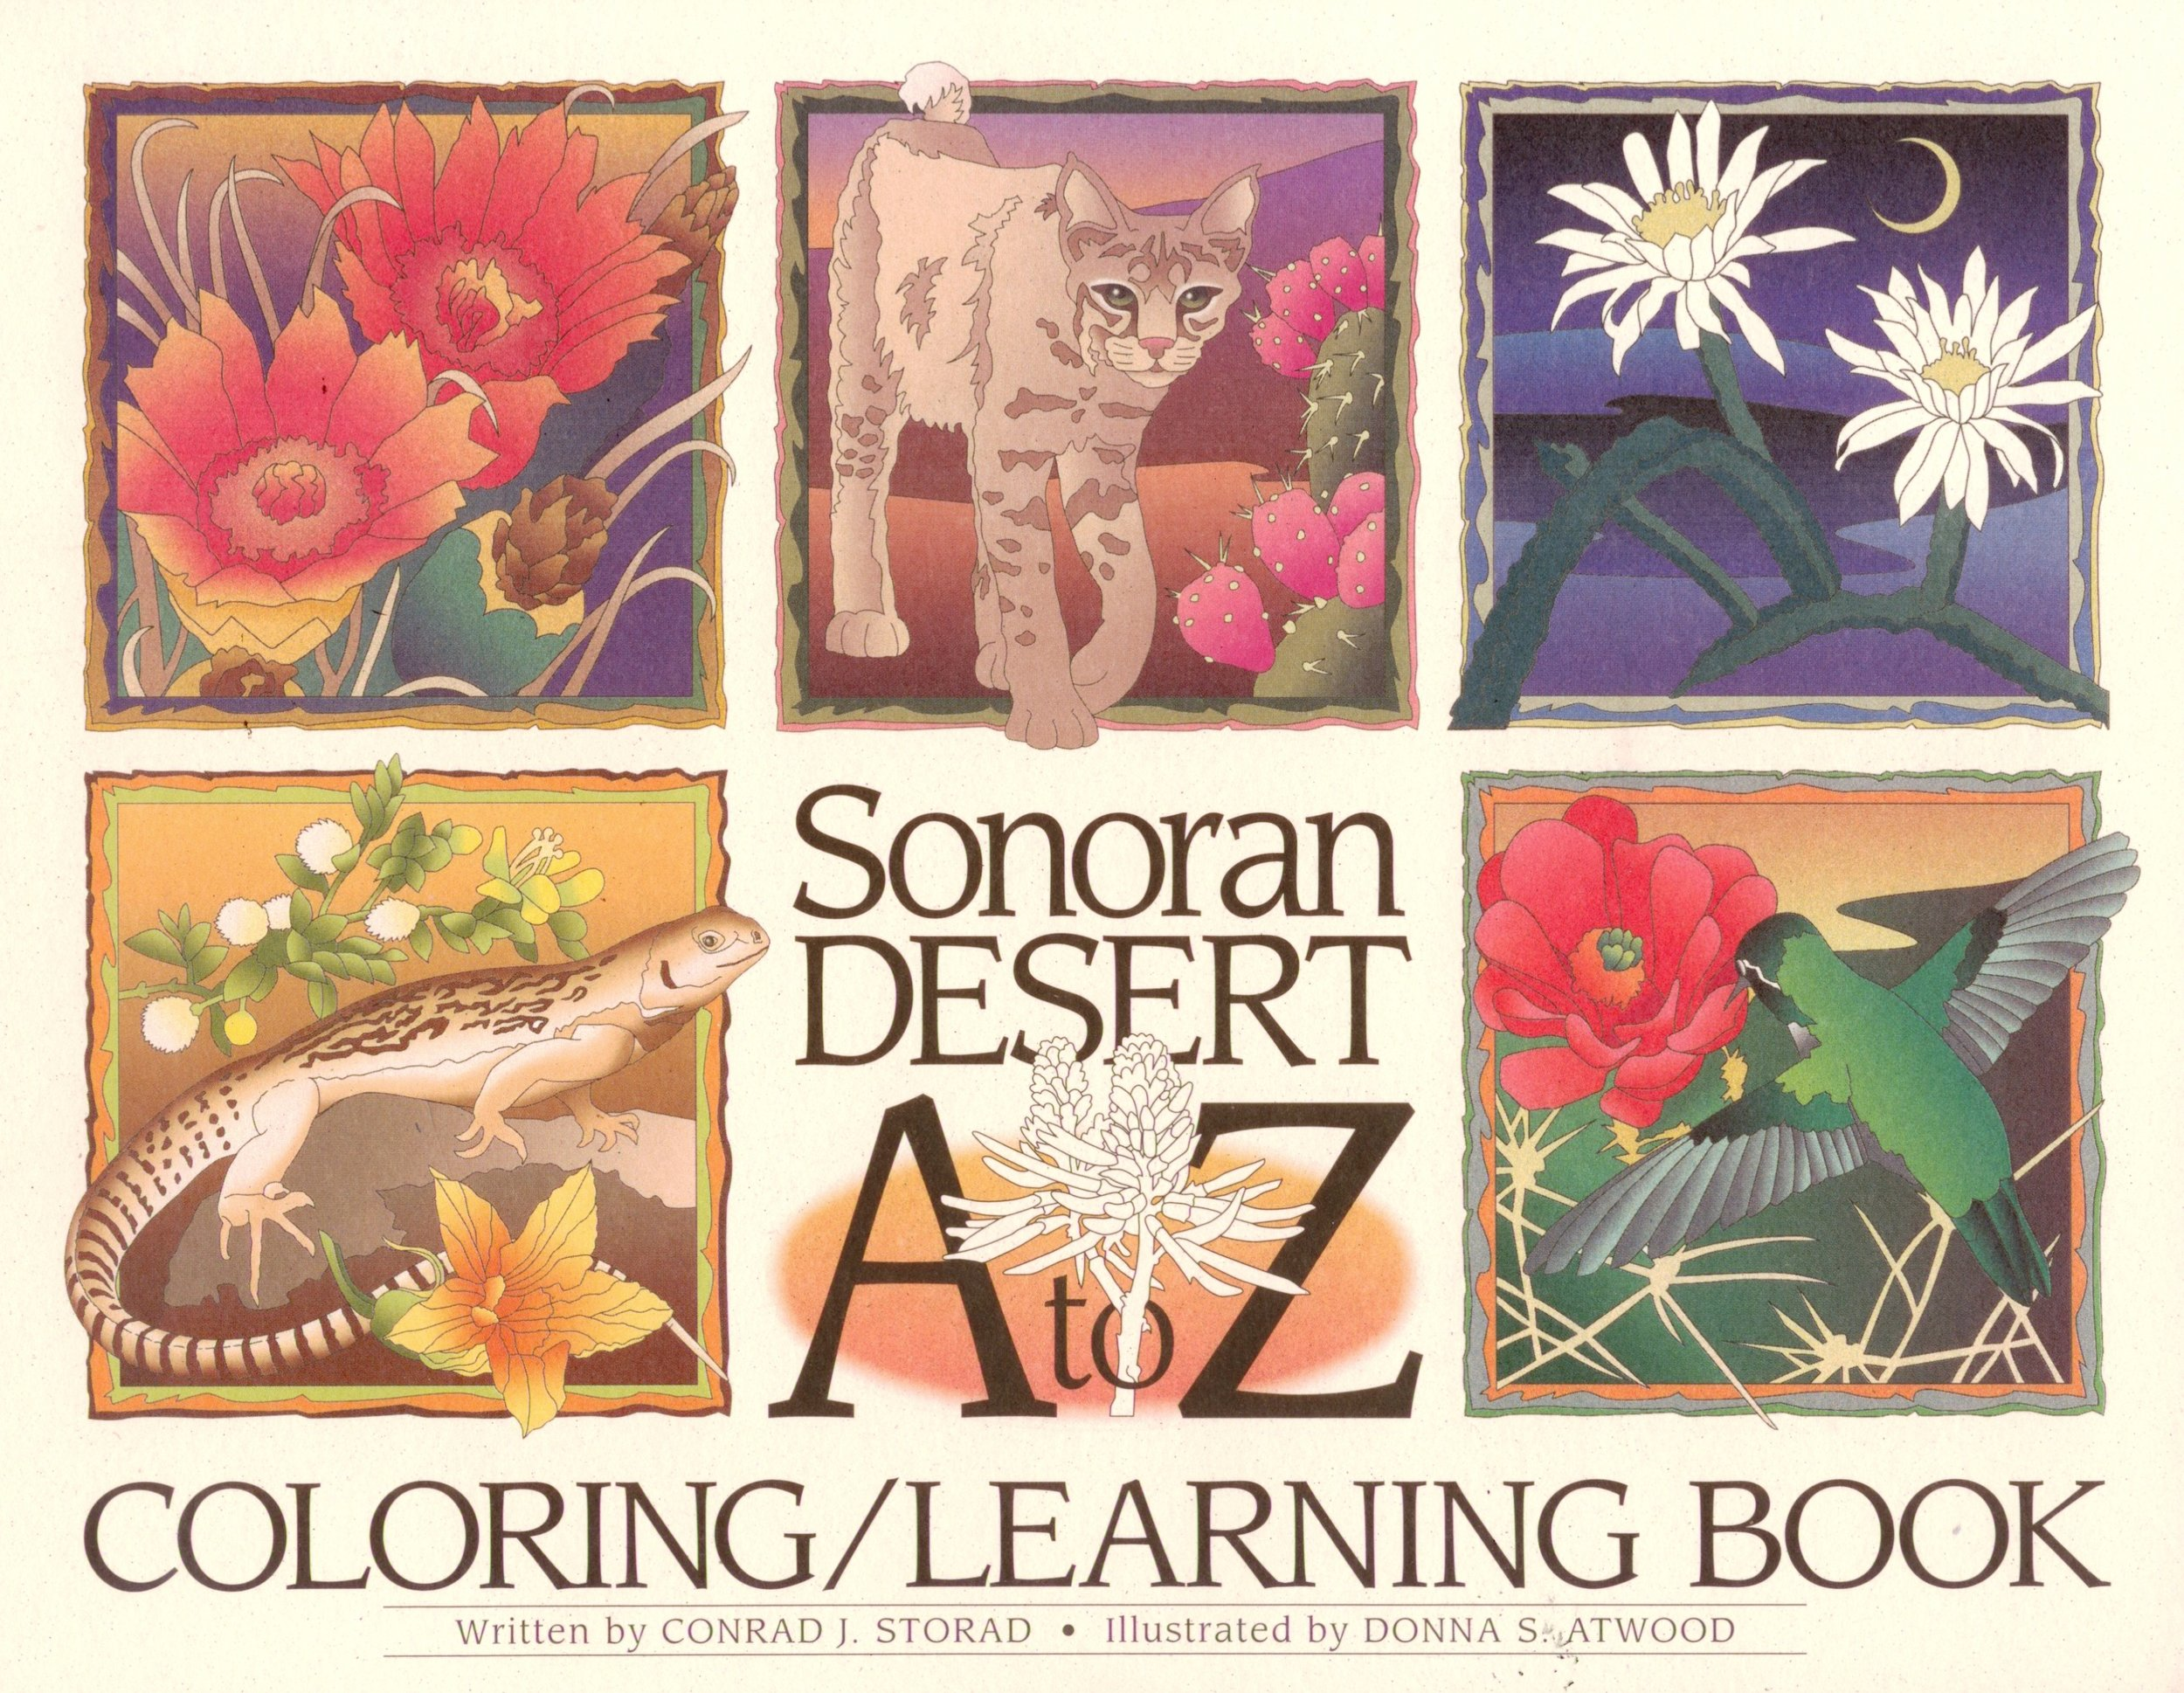 Sonoran Desert A to Z